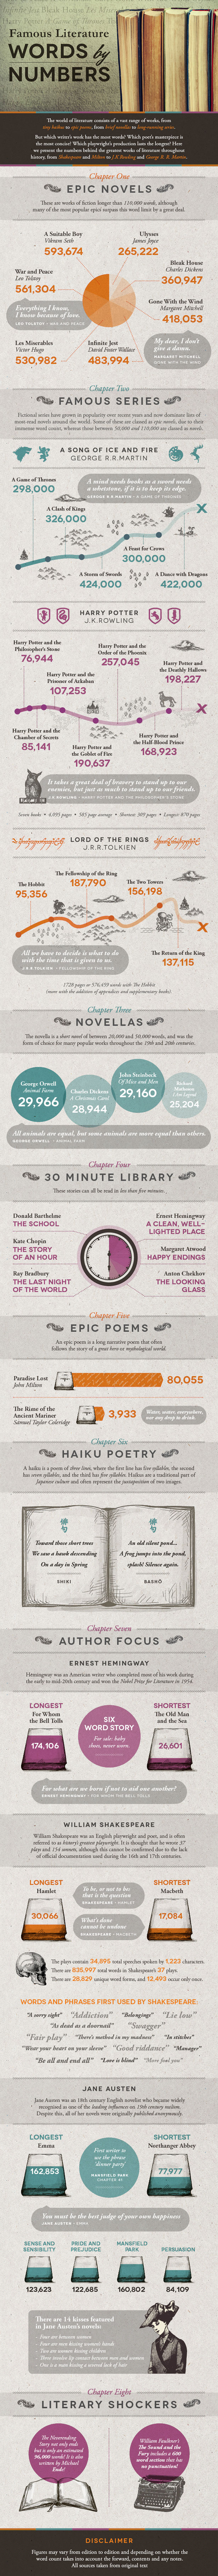 word count infographic